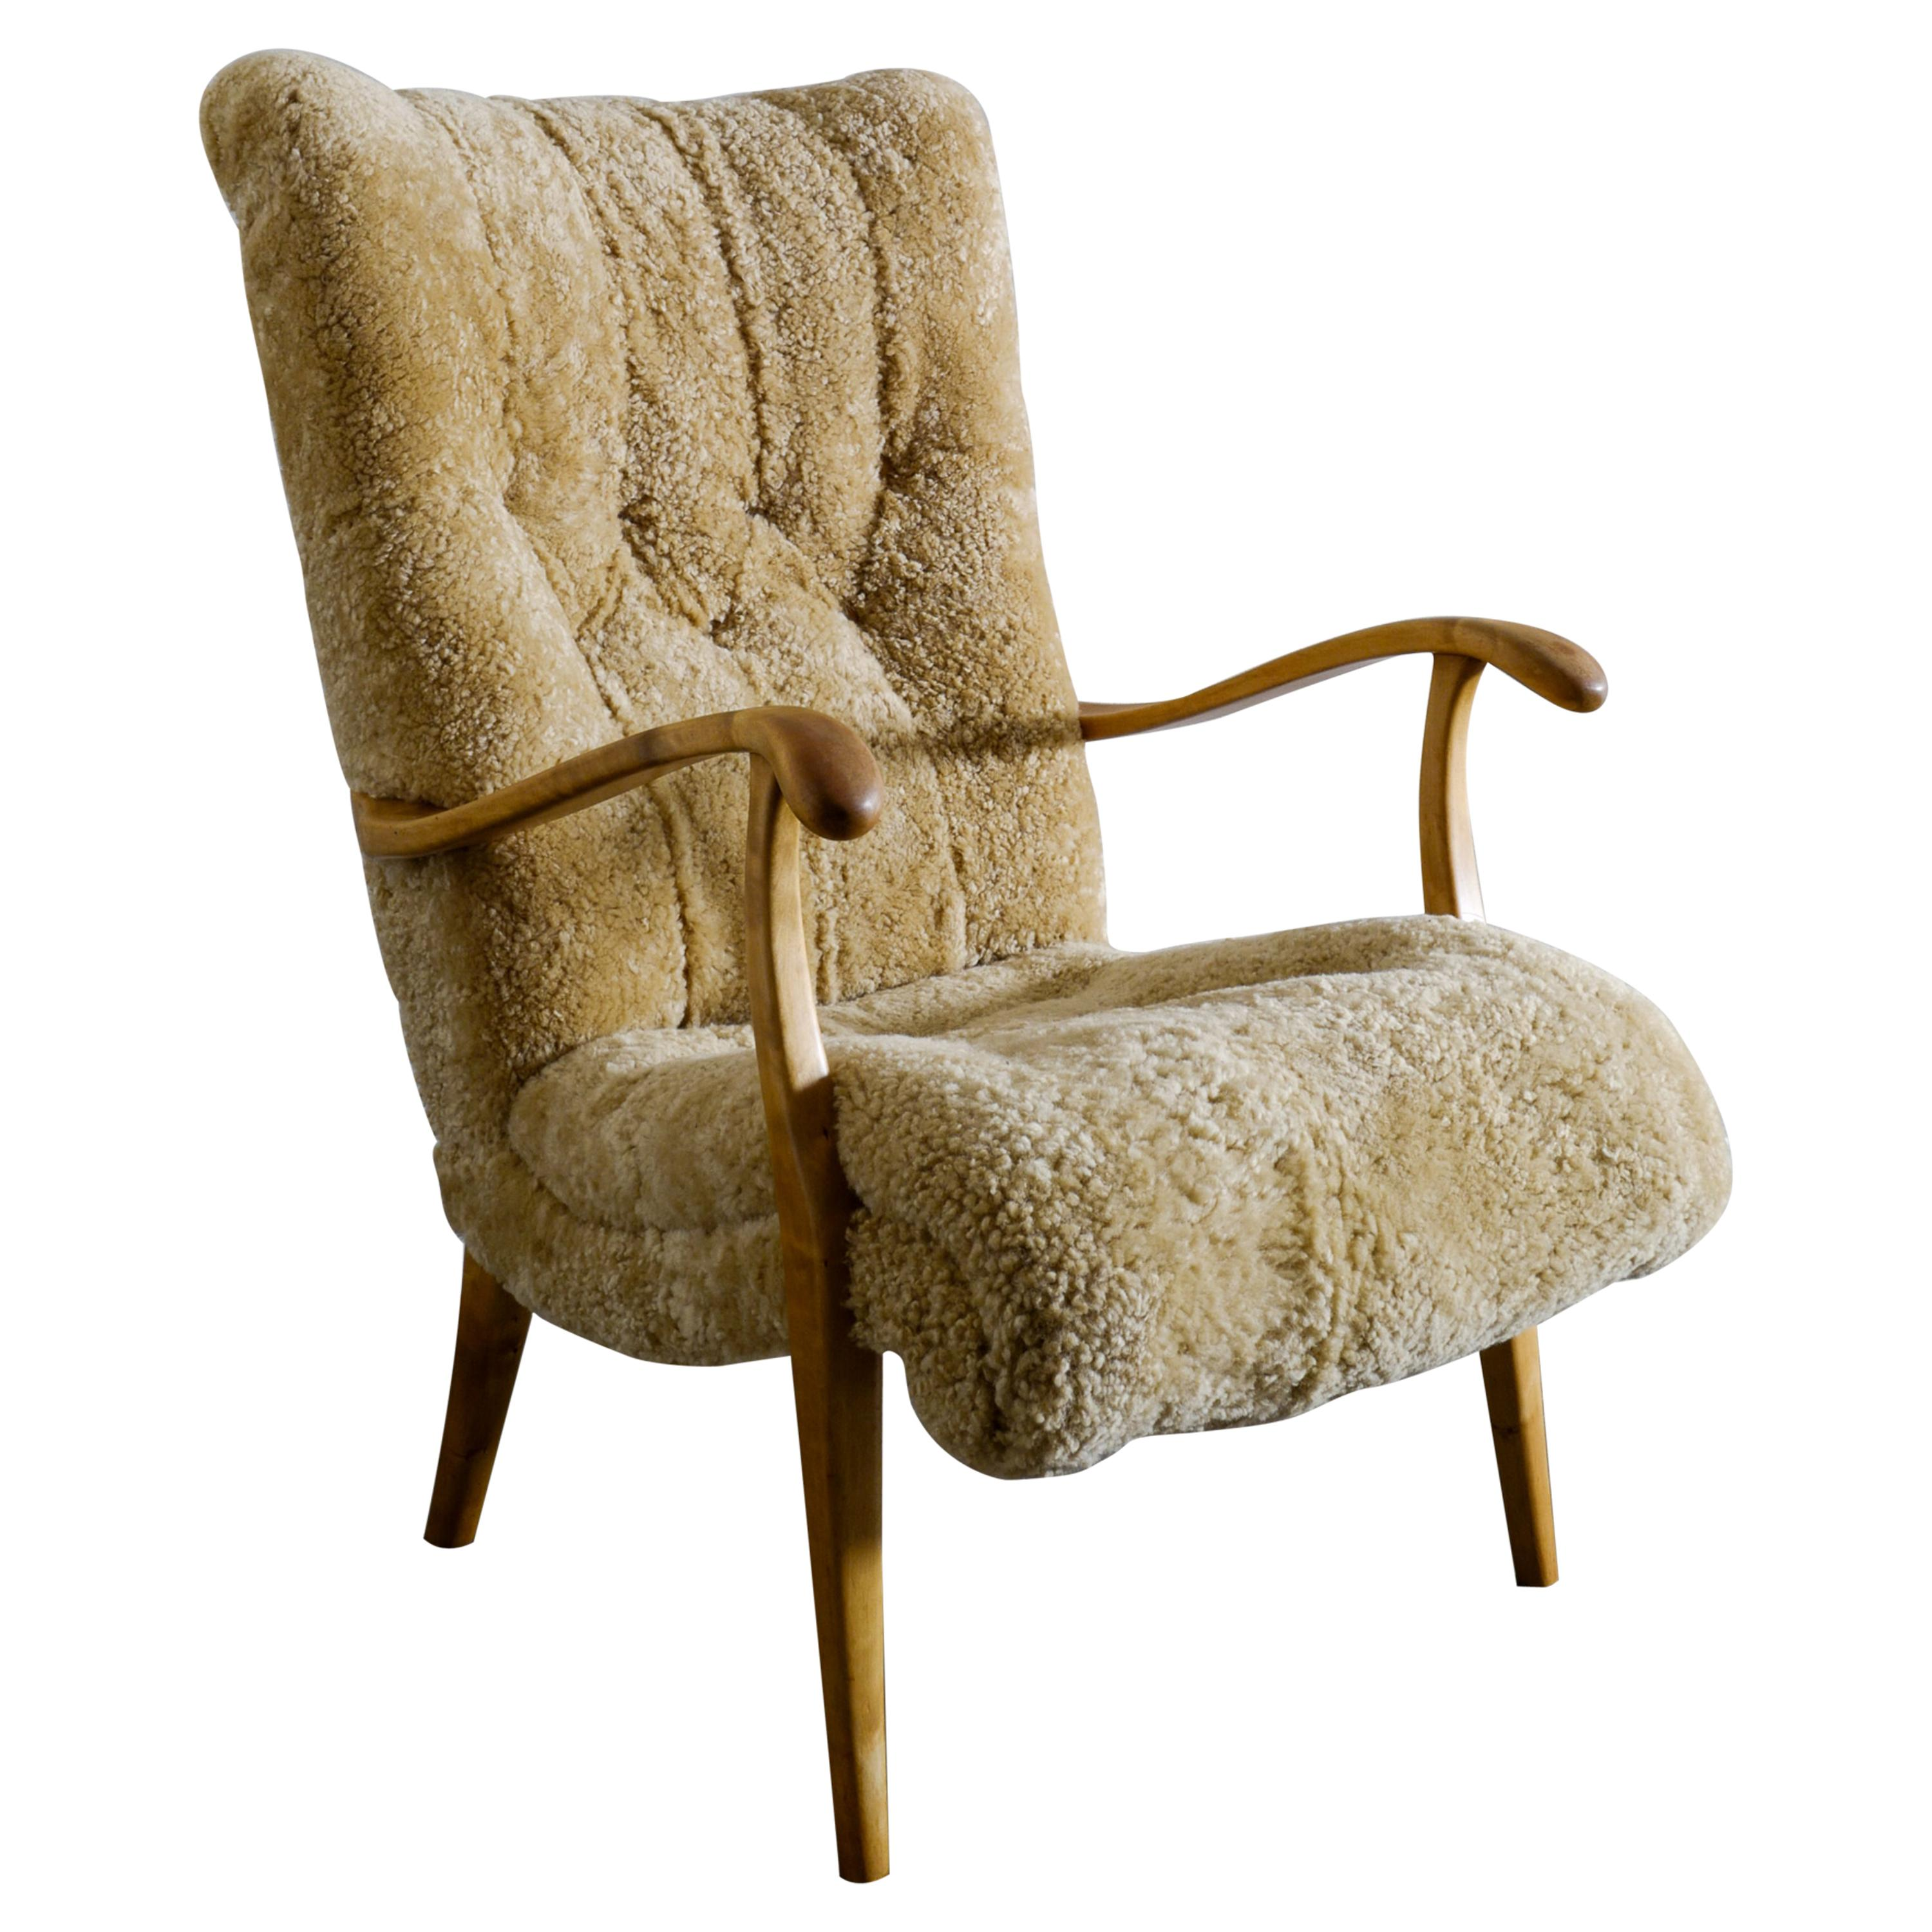 Swedish Lounge Easy Chair in Sheepskin Produced i Sweden, 1940s